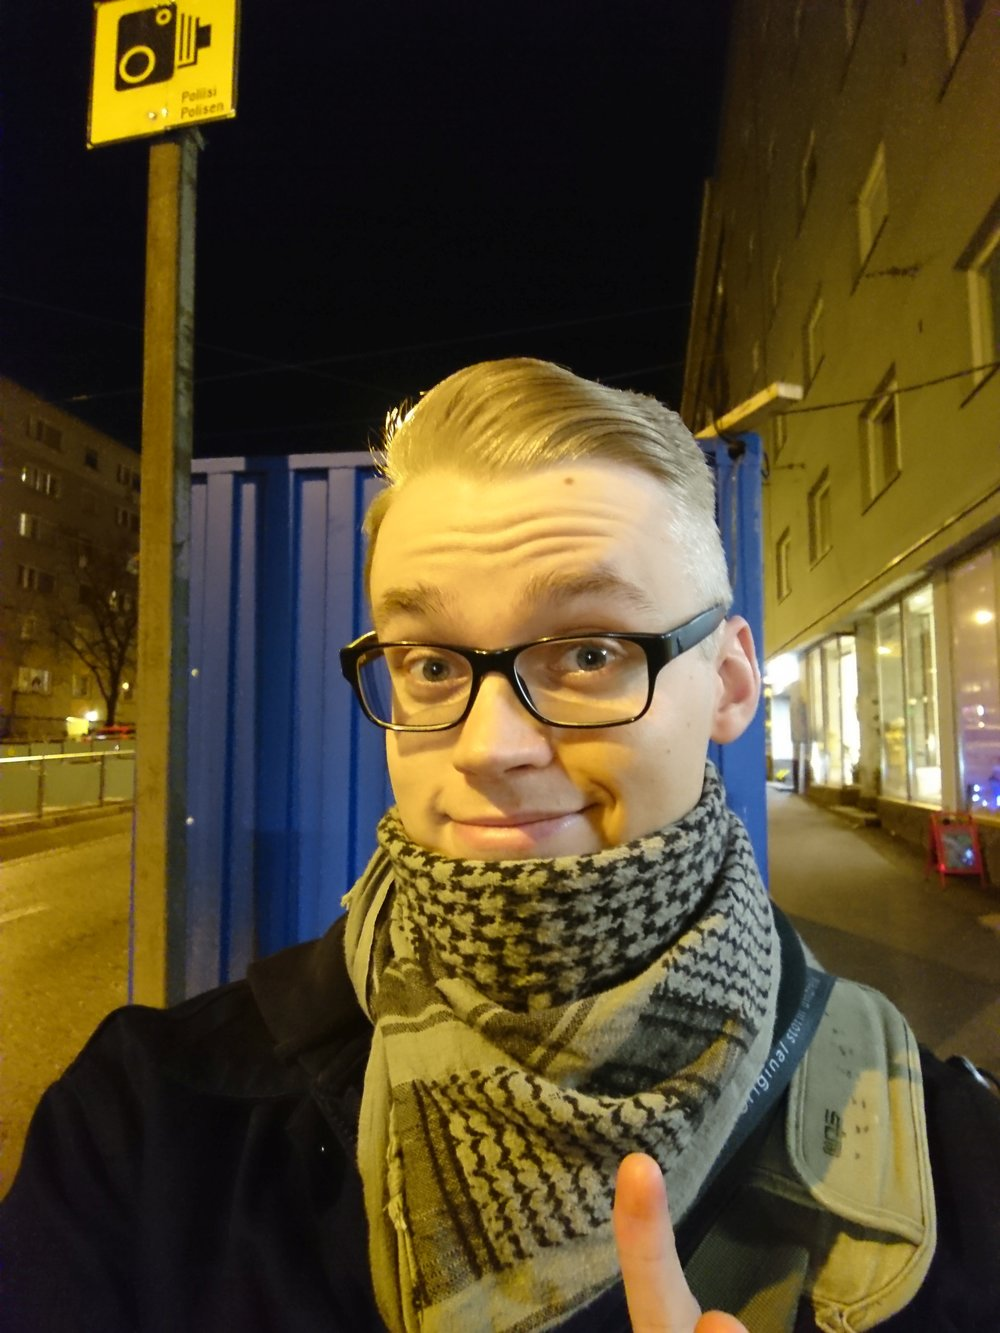 Jesse Lankila, Developer